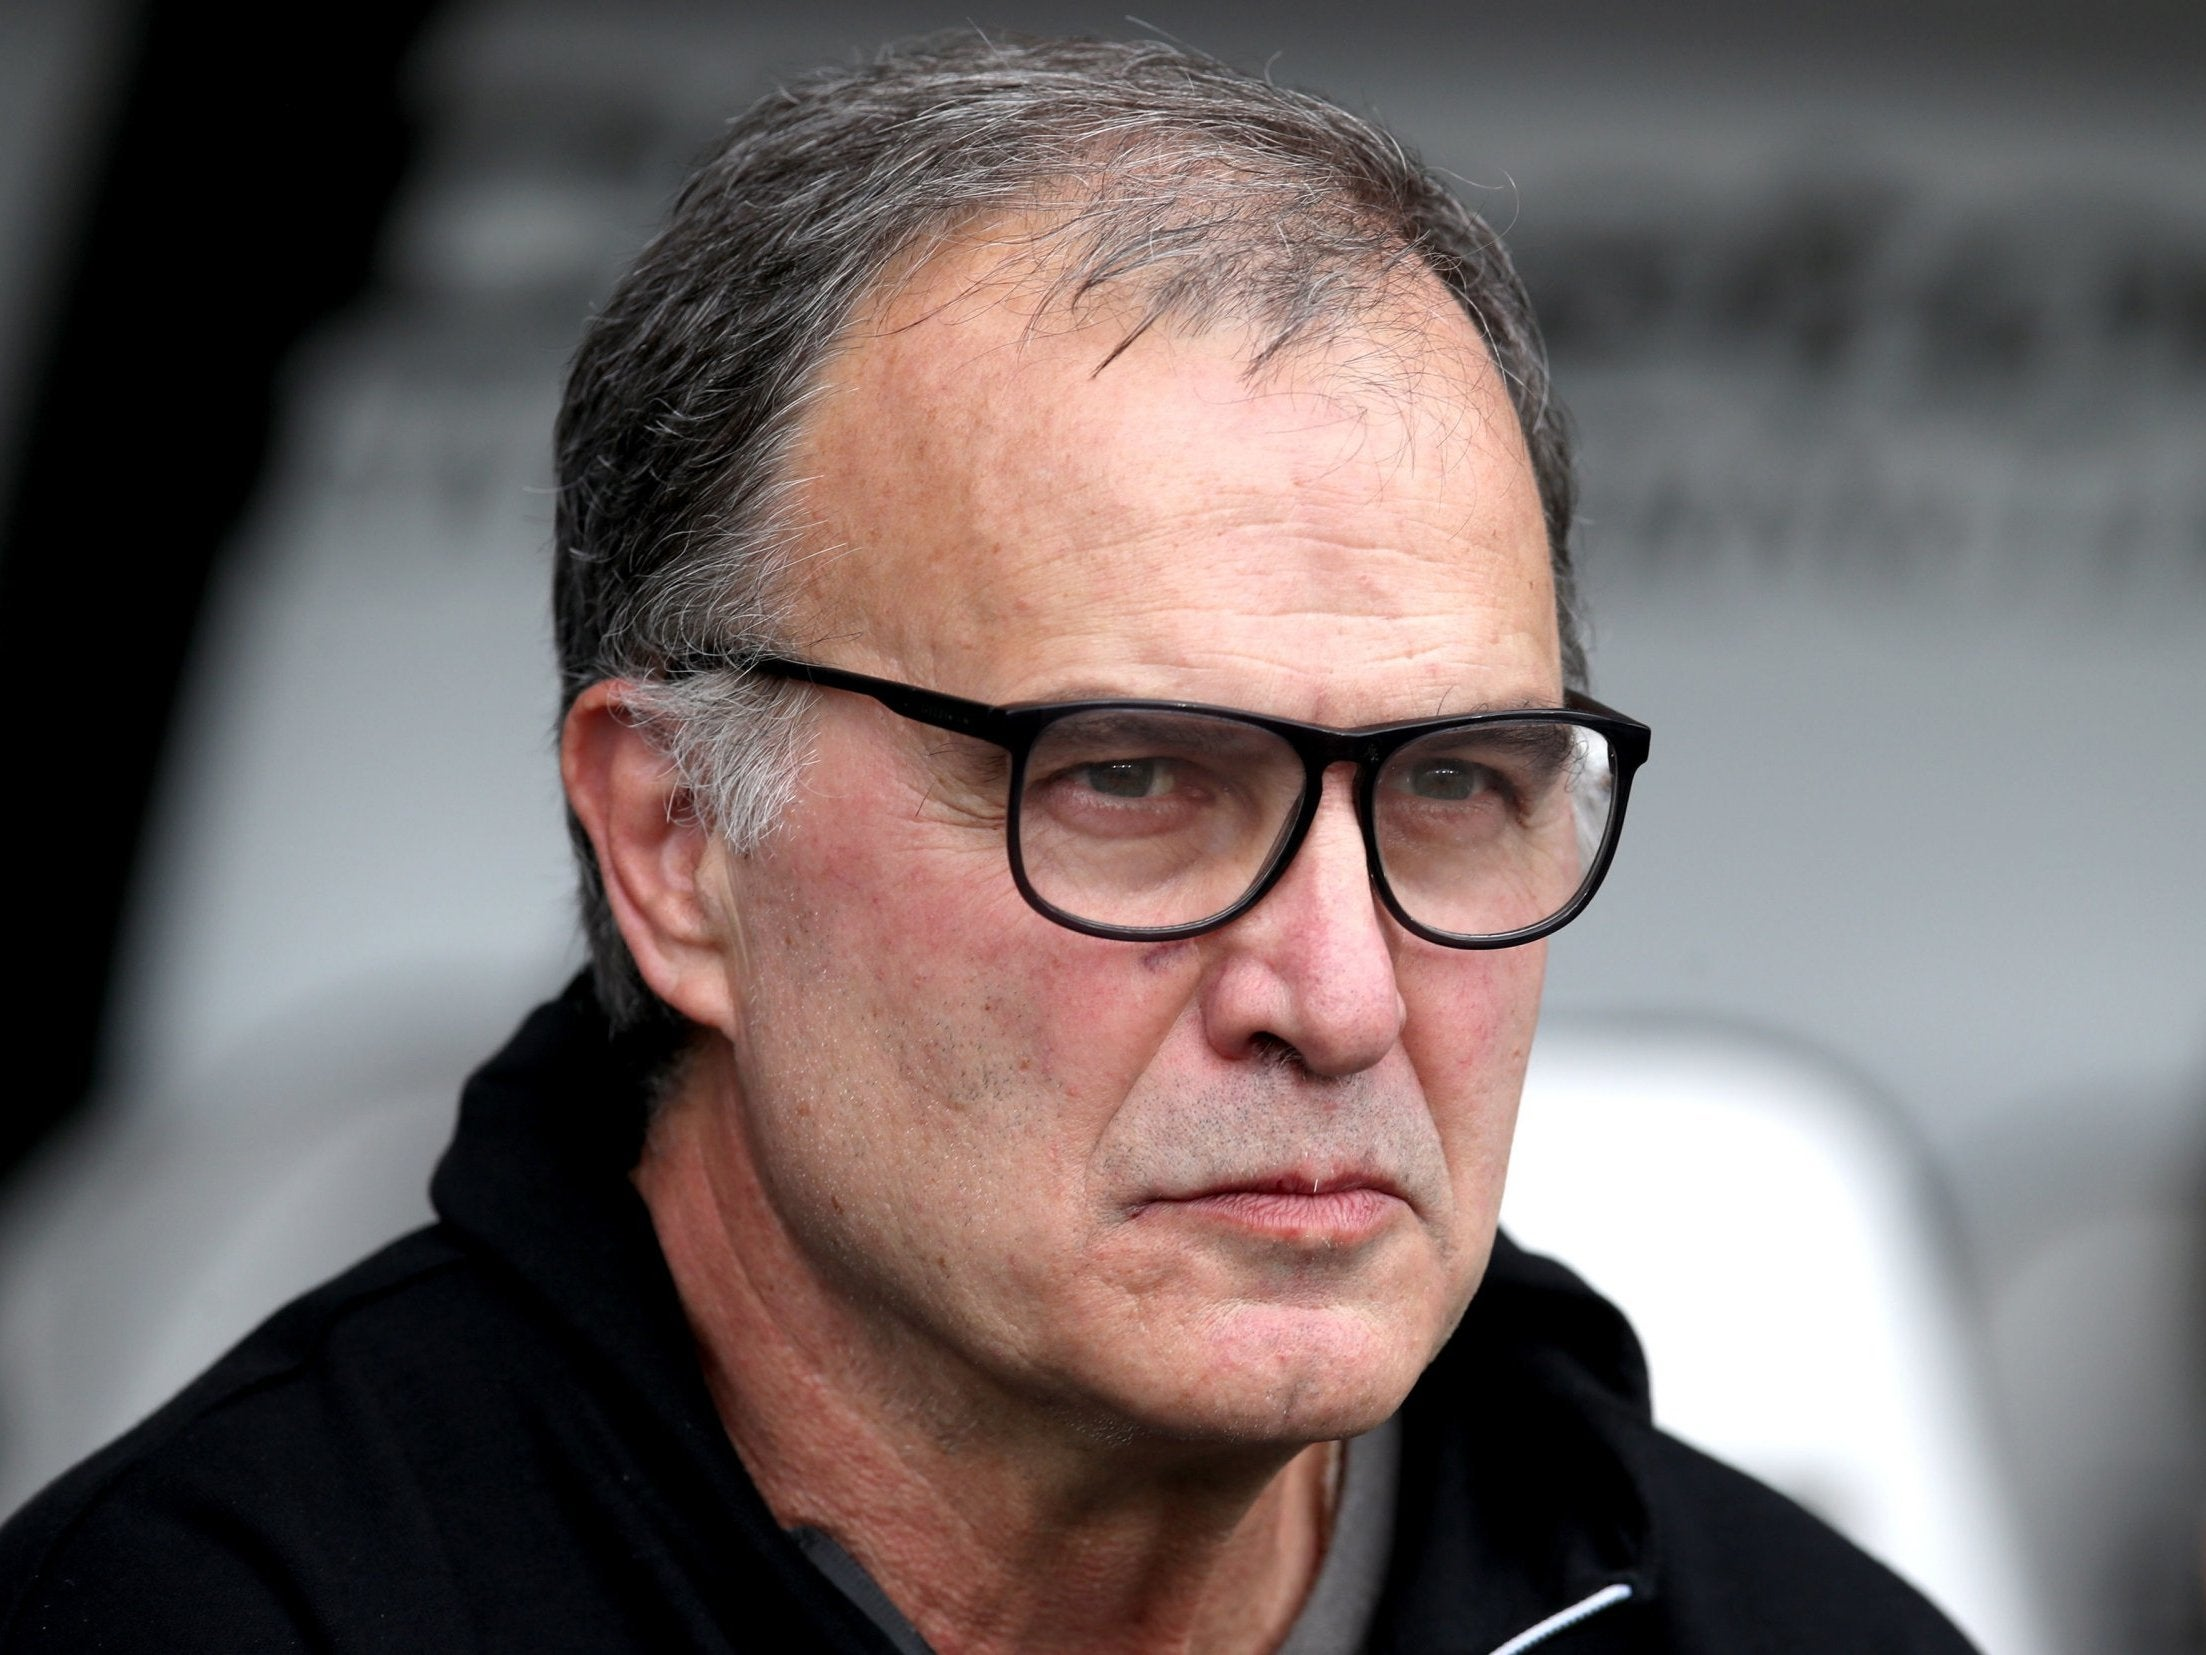 The Marcelo Bielsa 'spygate' row is another tiresome chapter in football's culture war - and there was no winner